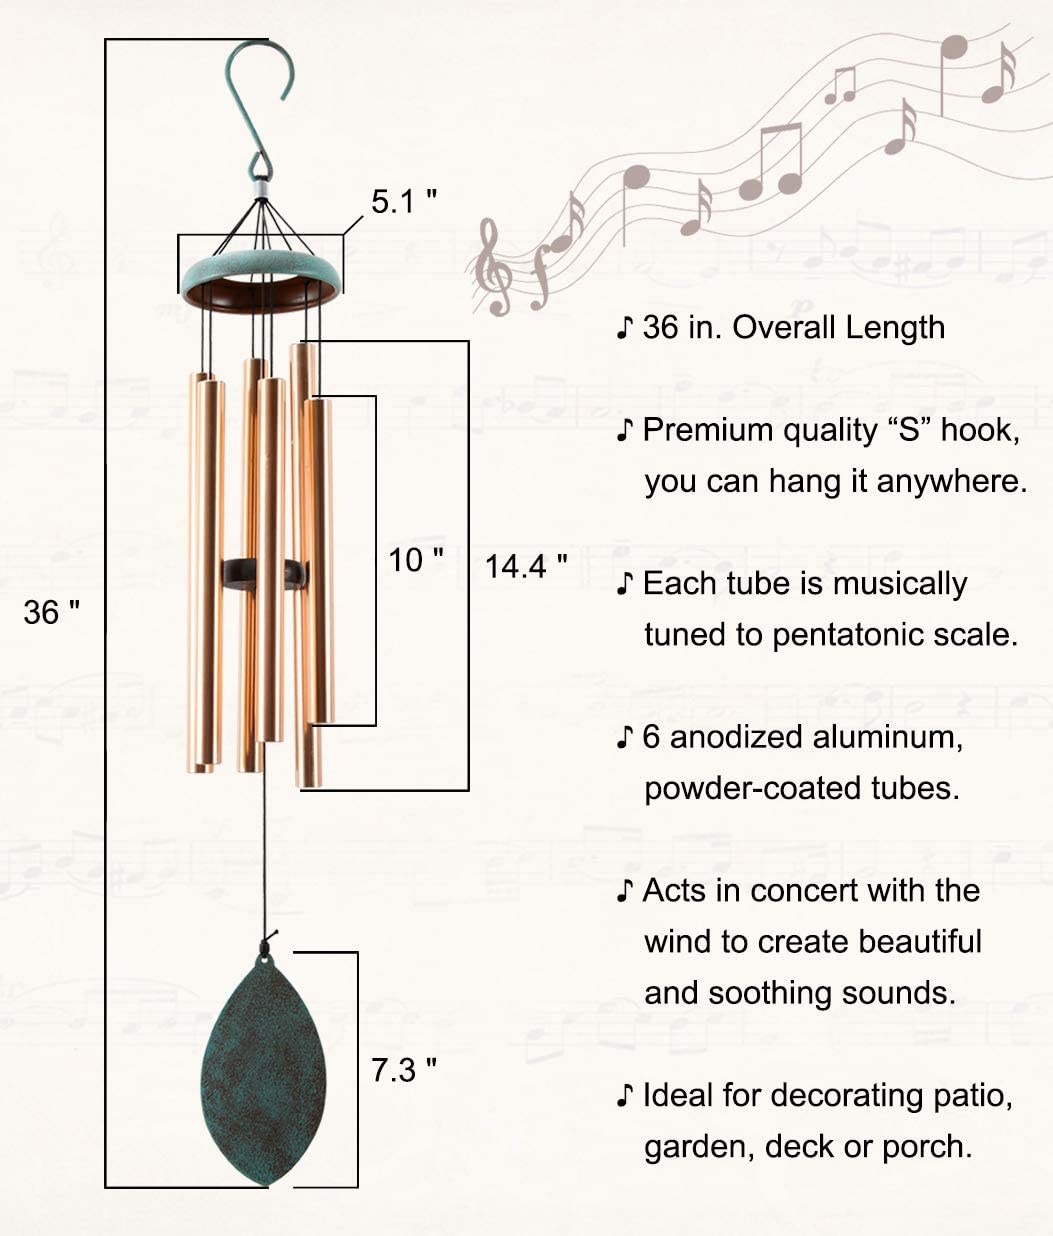 Elyxwork Wind Chimes Outdoor Large Deep Tone, 36 Inch Sympathy Musical Windchimes with 6 Tubes Tuned, Unique Aluminum Chimes for Memorial Gift or Garden Decor : Garden & Outdoor